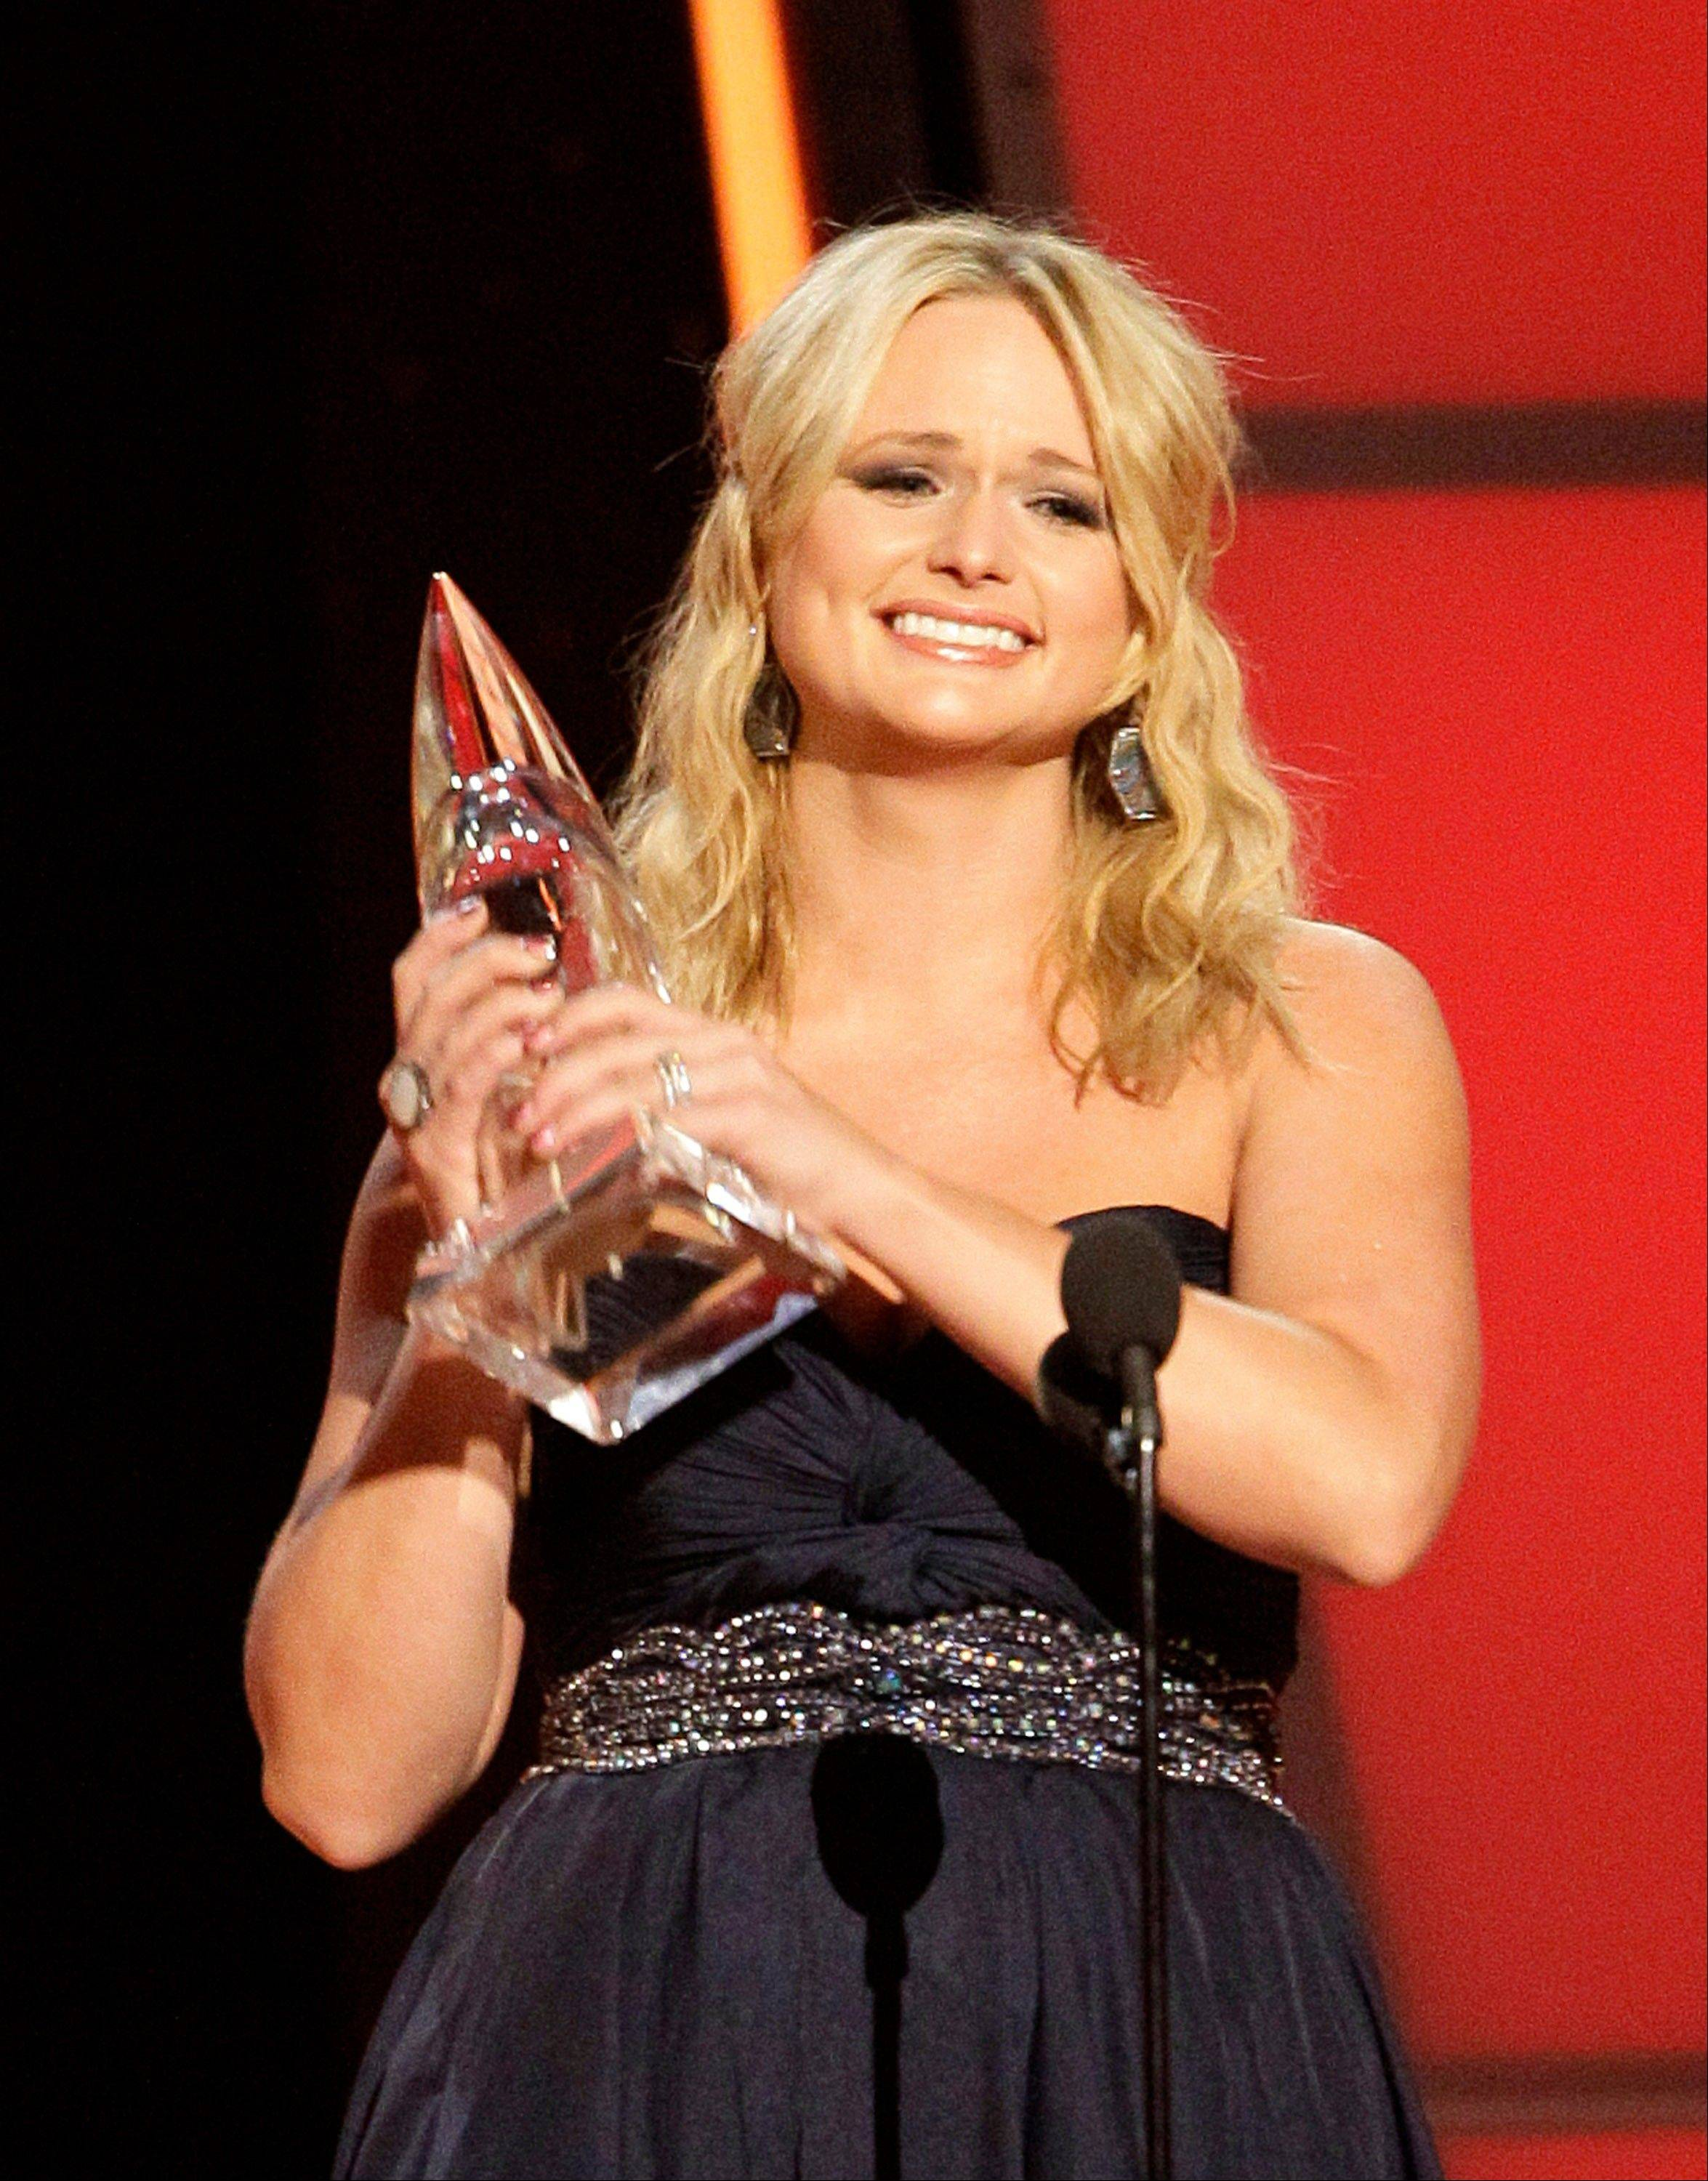 Miranda Lambert accepts the award for female vocalist of the year at the 46th Annual Country Music Awards at the Bridgestone Arena on Thursday, Nov. 1, 2012, in Nashville, Tenn.